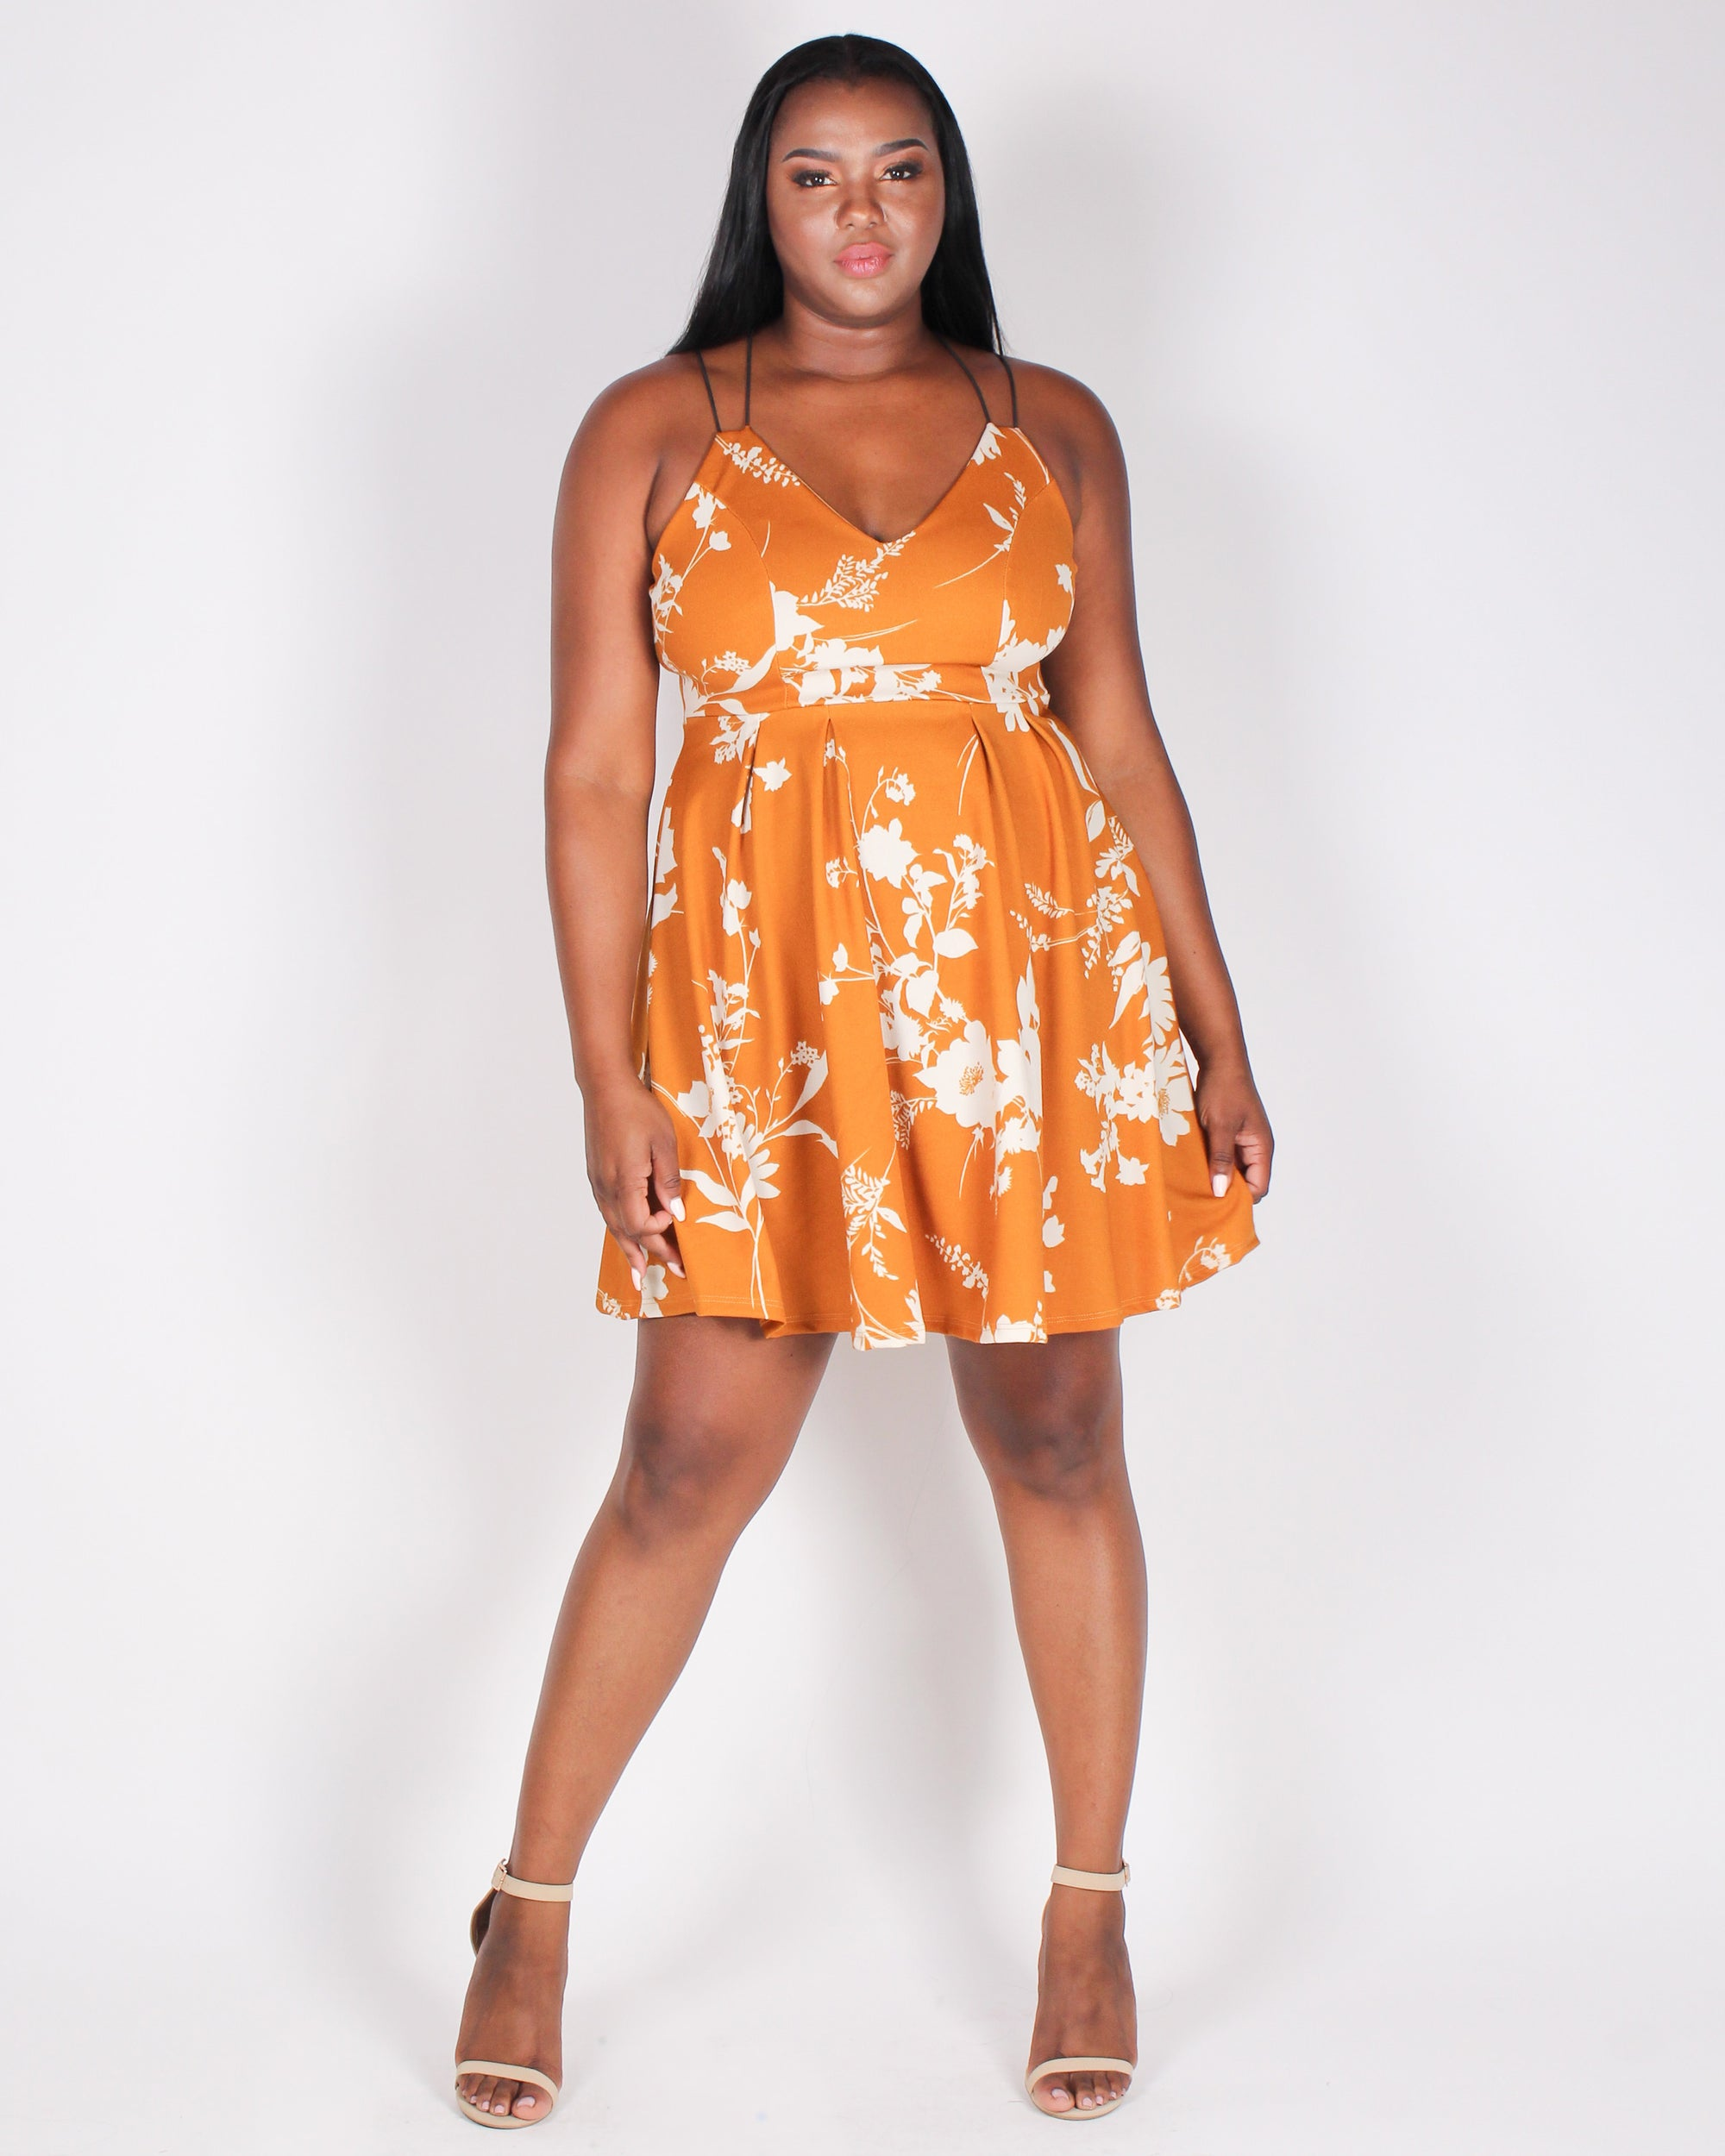 Fashion Q Shop Q Floral in My Blood Plus Sundress (Dark Mustard) BLD1373-7